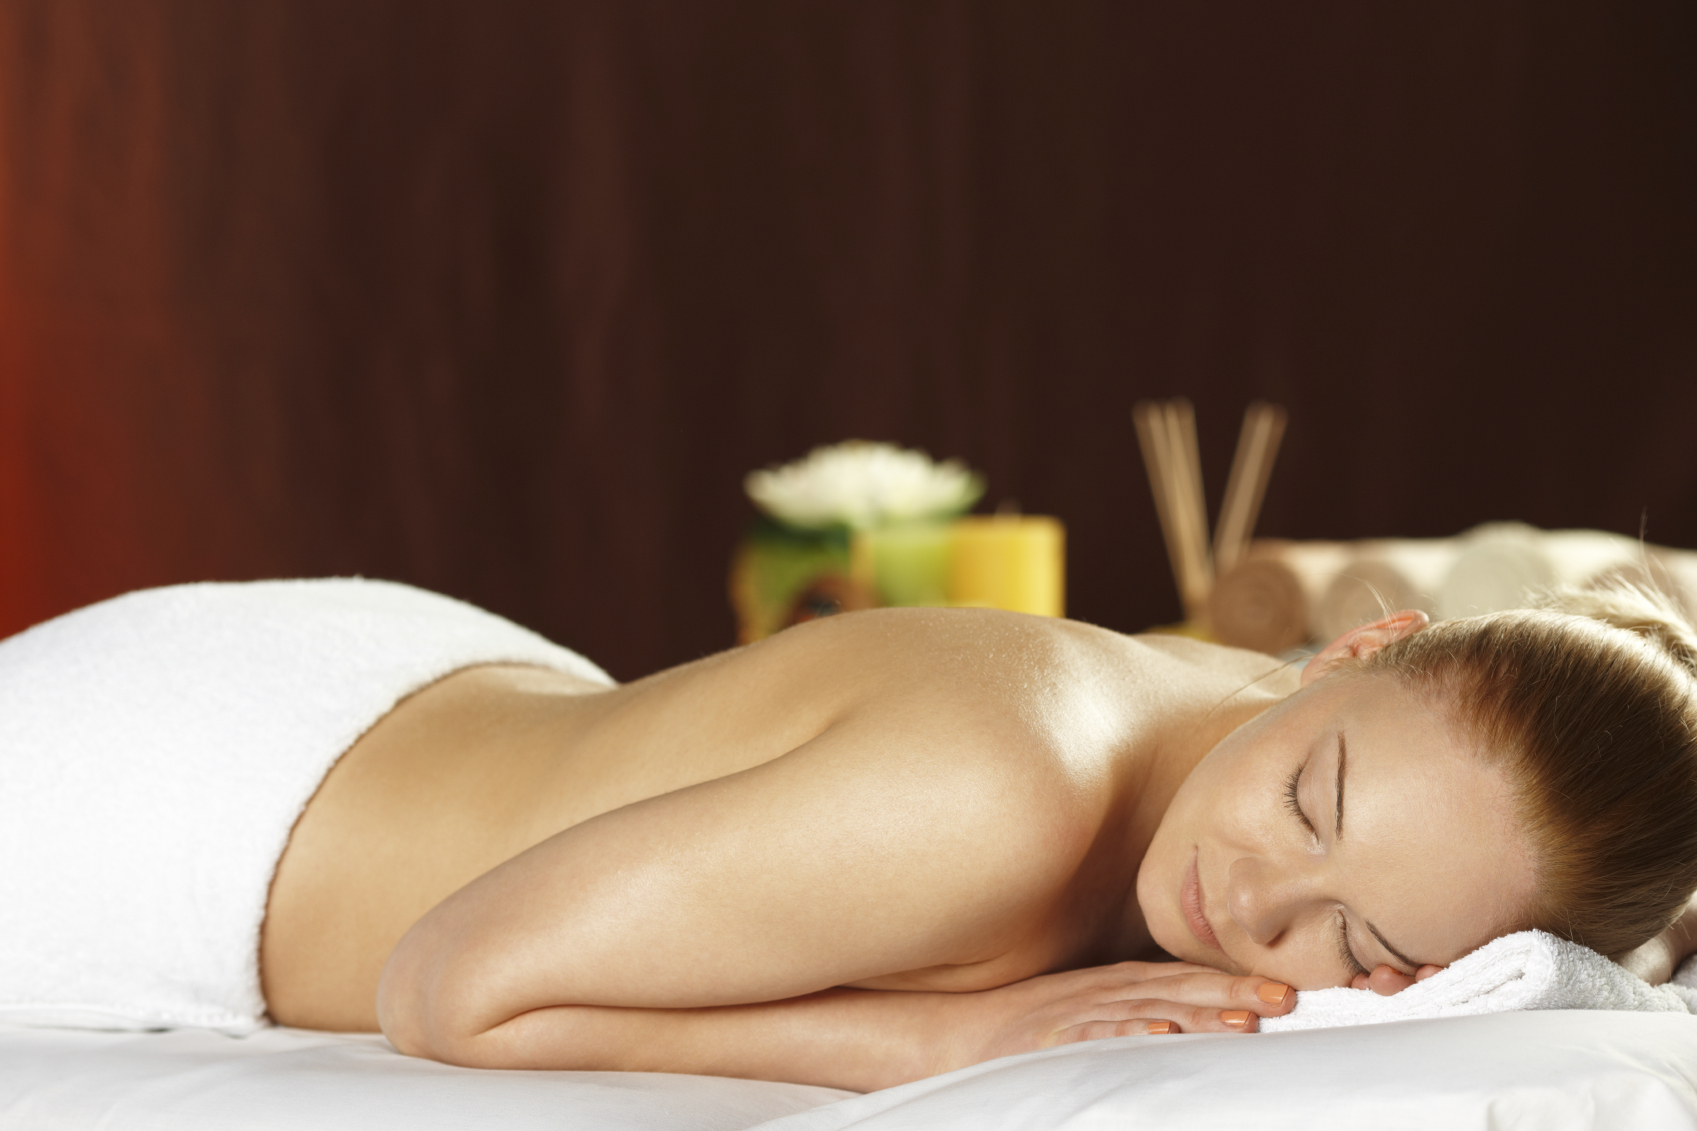 Professional massages and spa services provided by professional massage therapist